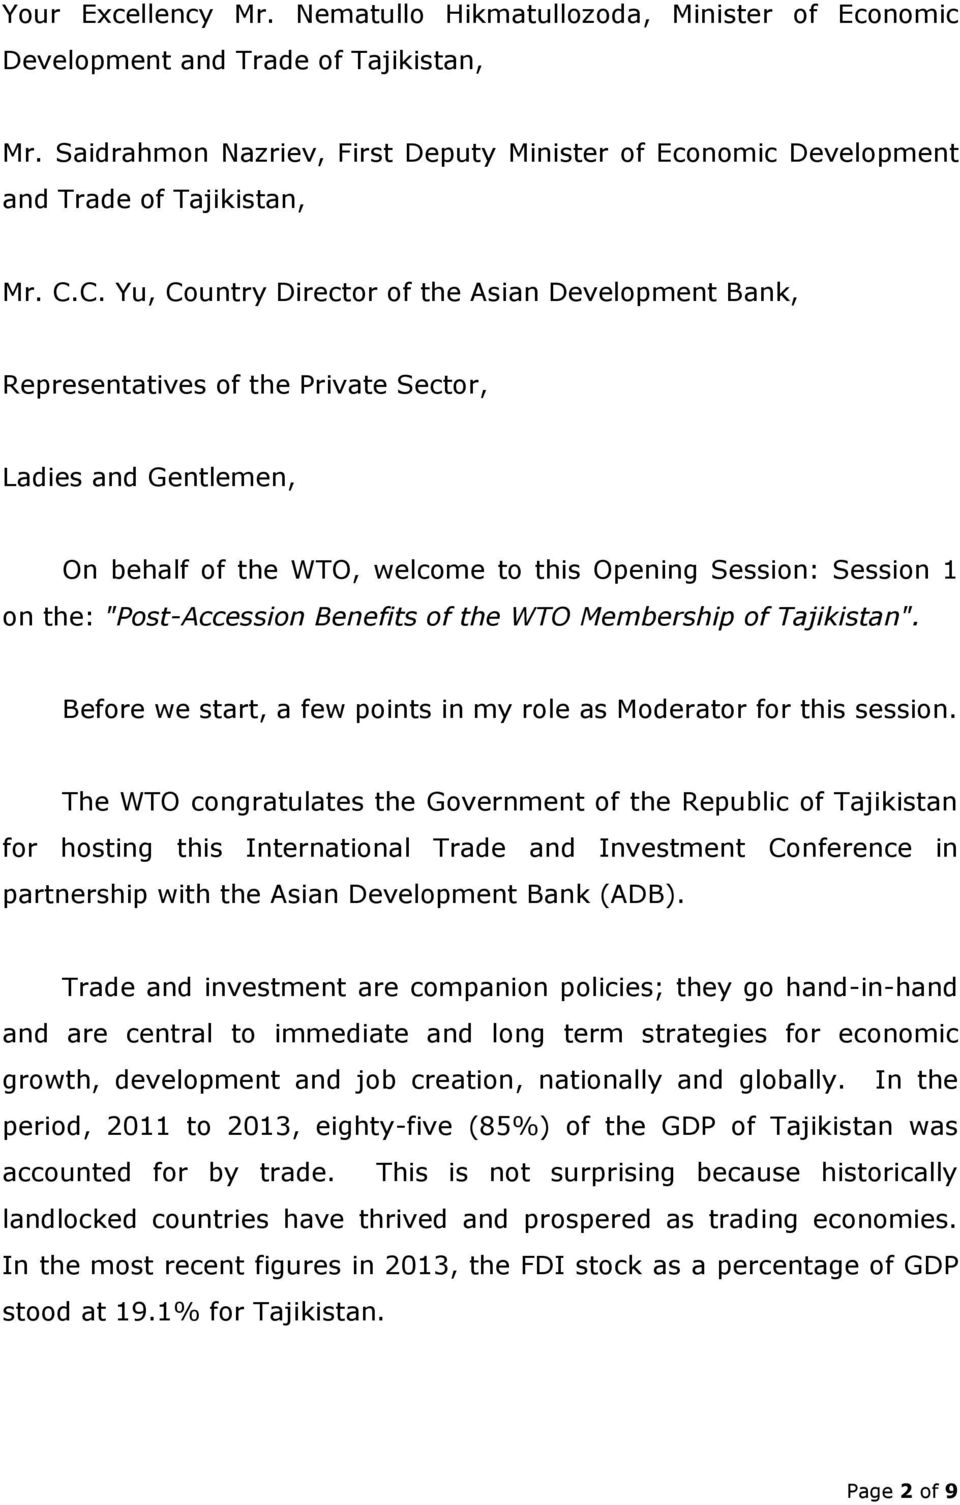 C. Yu, Country Director of the Asian Development Bank, Representatives of the Private Sector, Ladies and Gentlemen, On behalf of the WTO, welcome to this Opening Session: Session 1 on the: